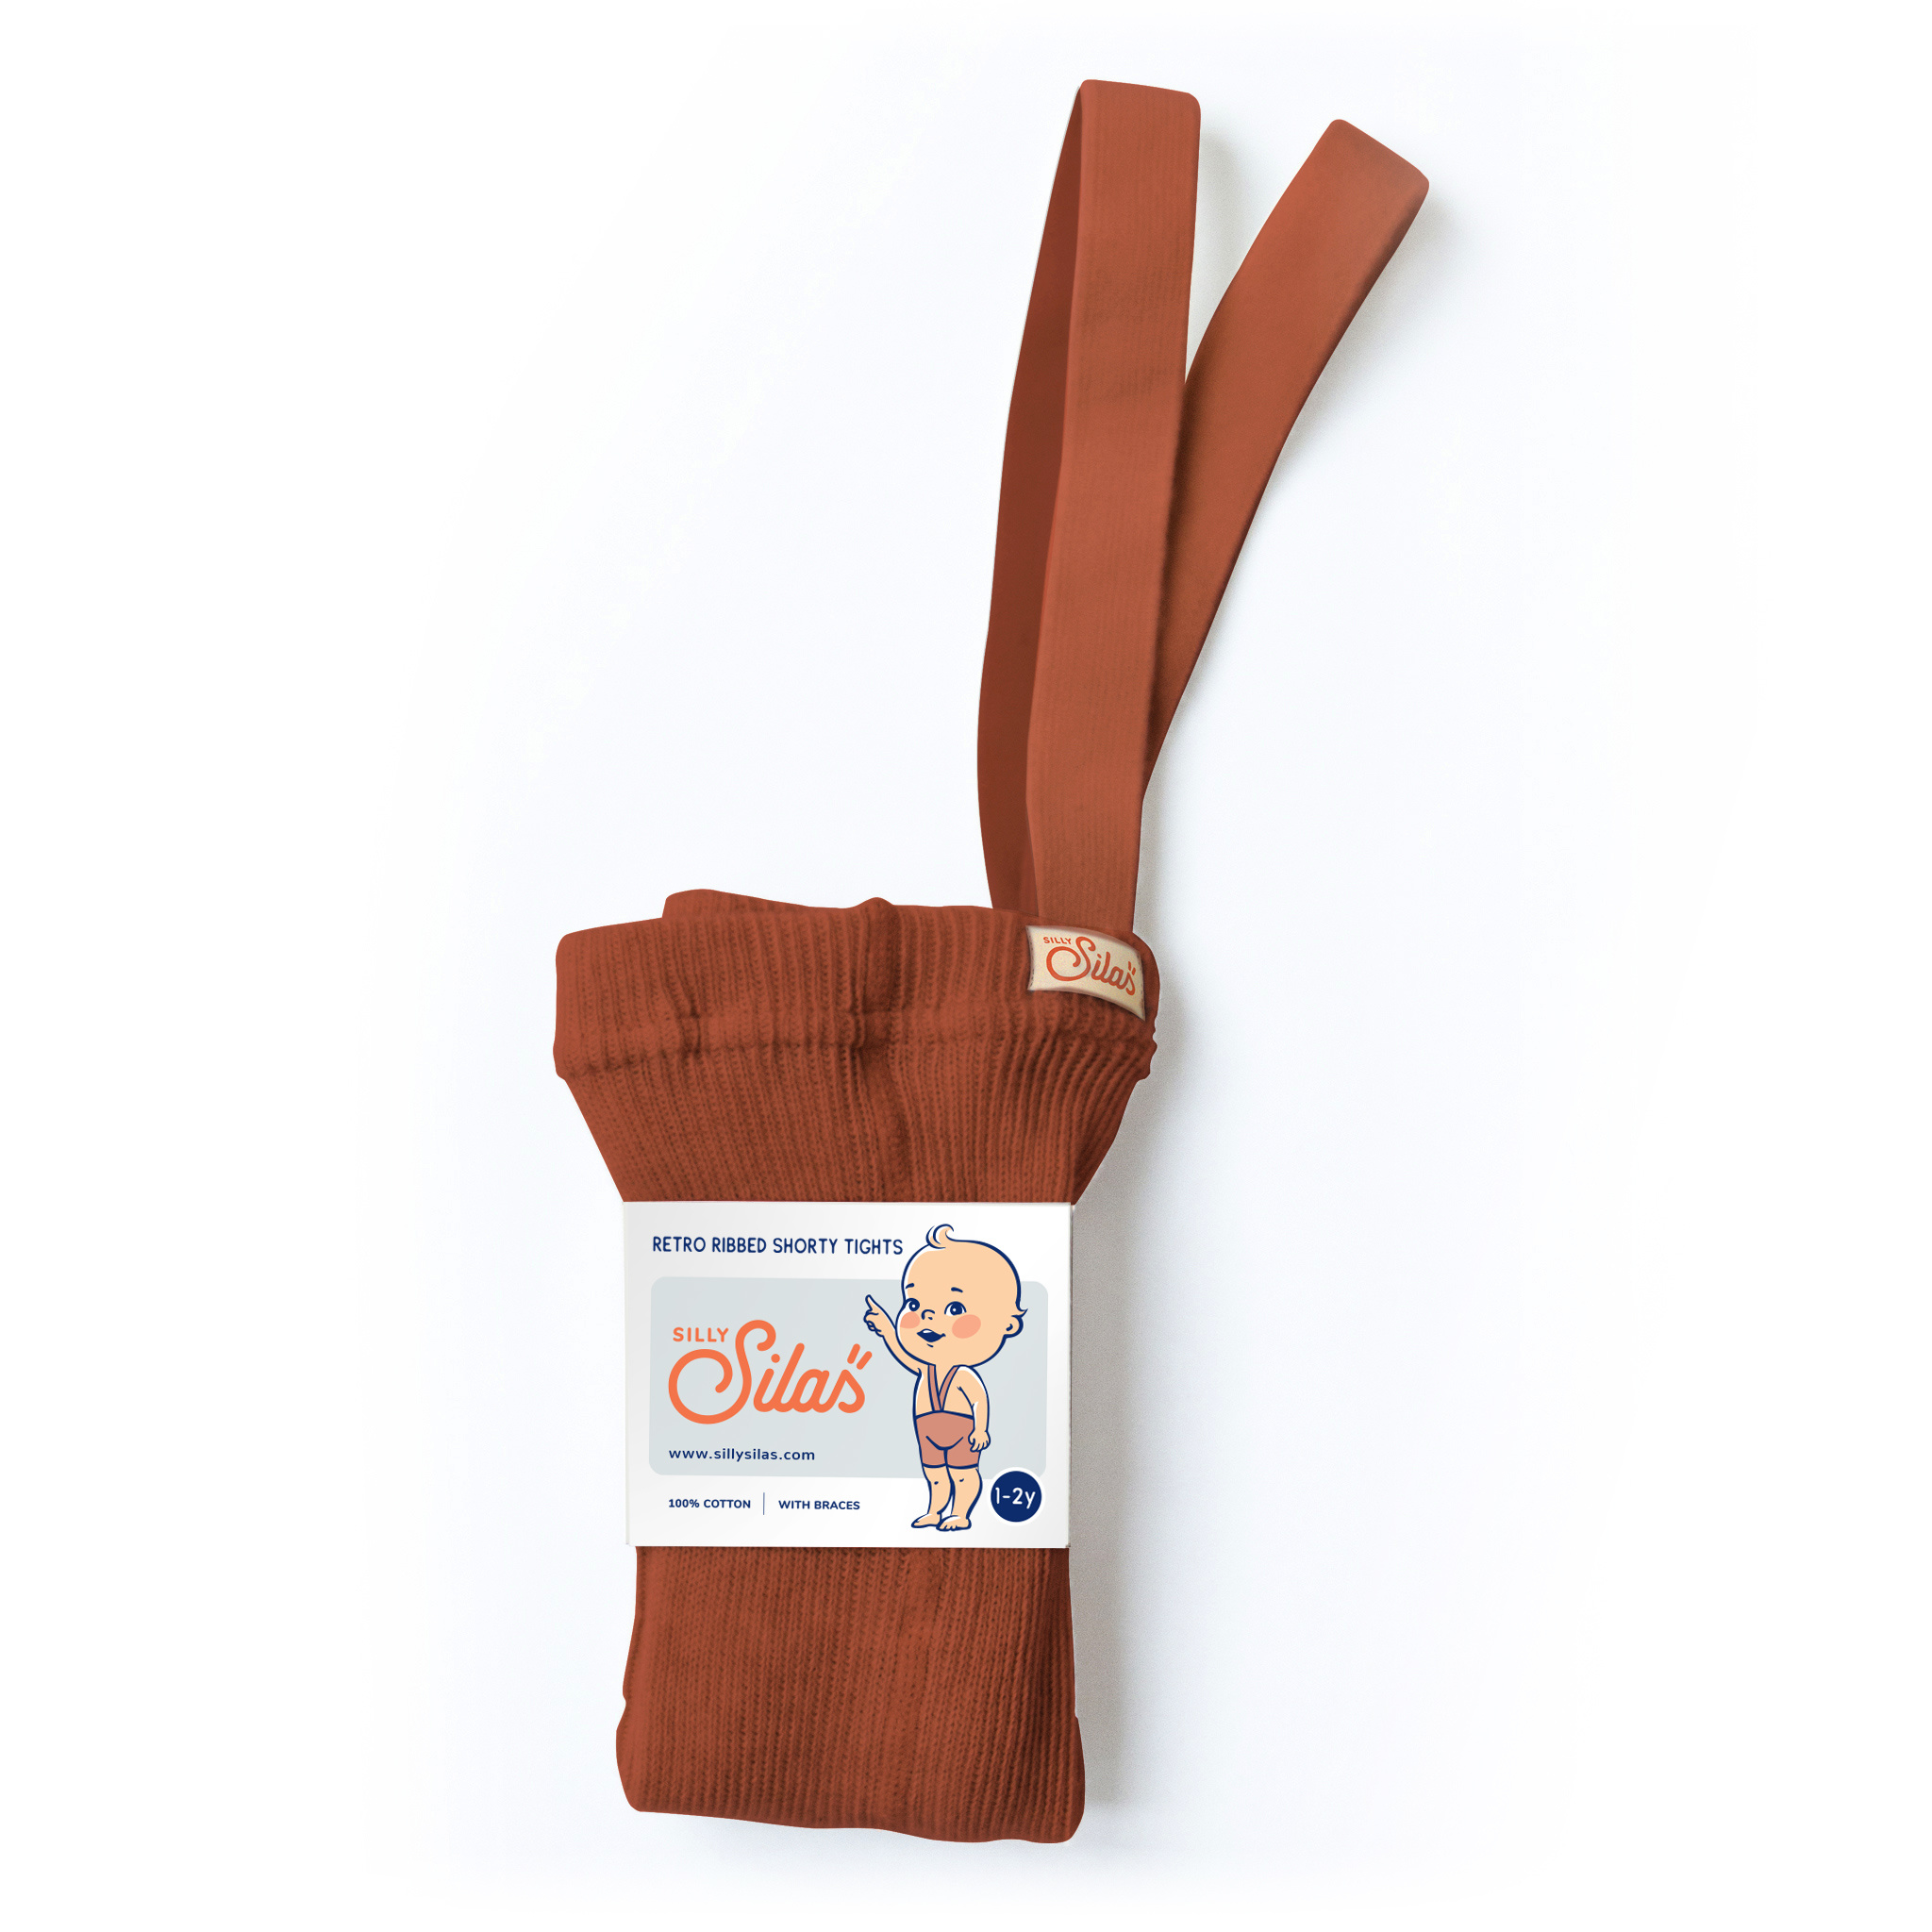 Silly Silas shorty tights with braces - 100% cotton - cinnamon - 0 to 3 years